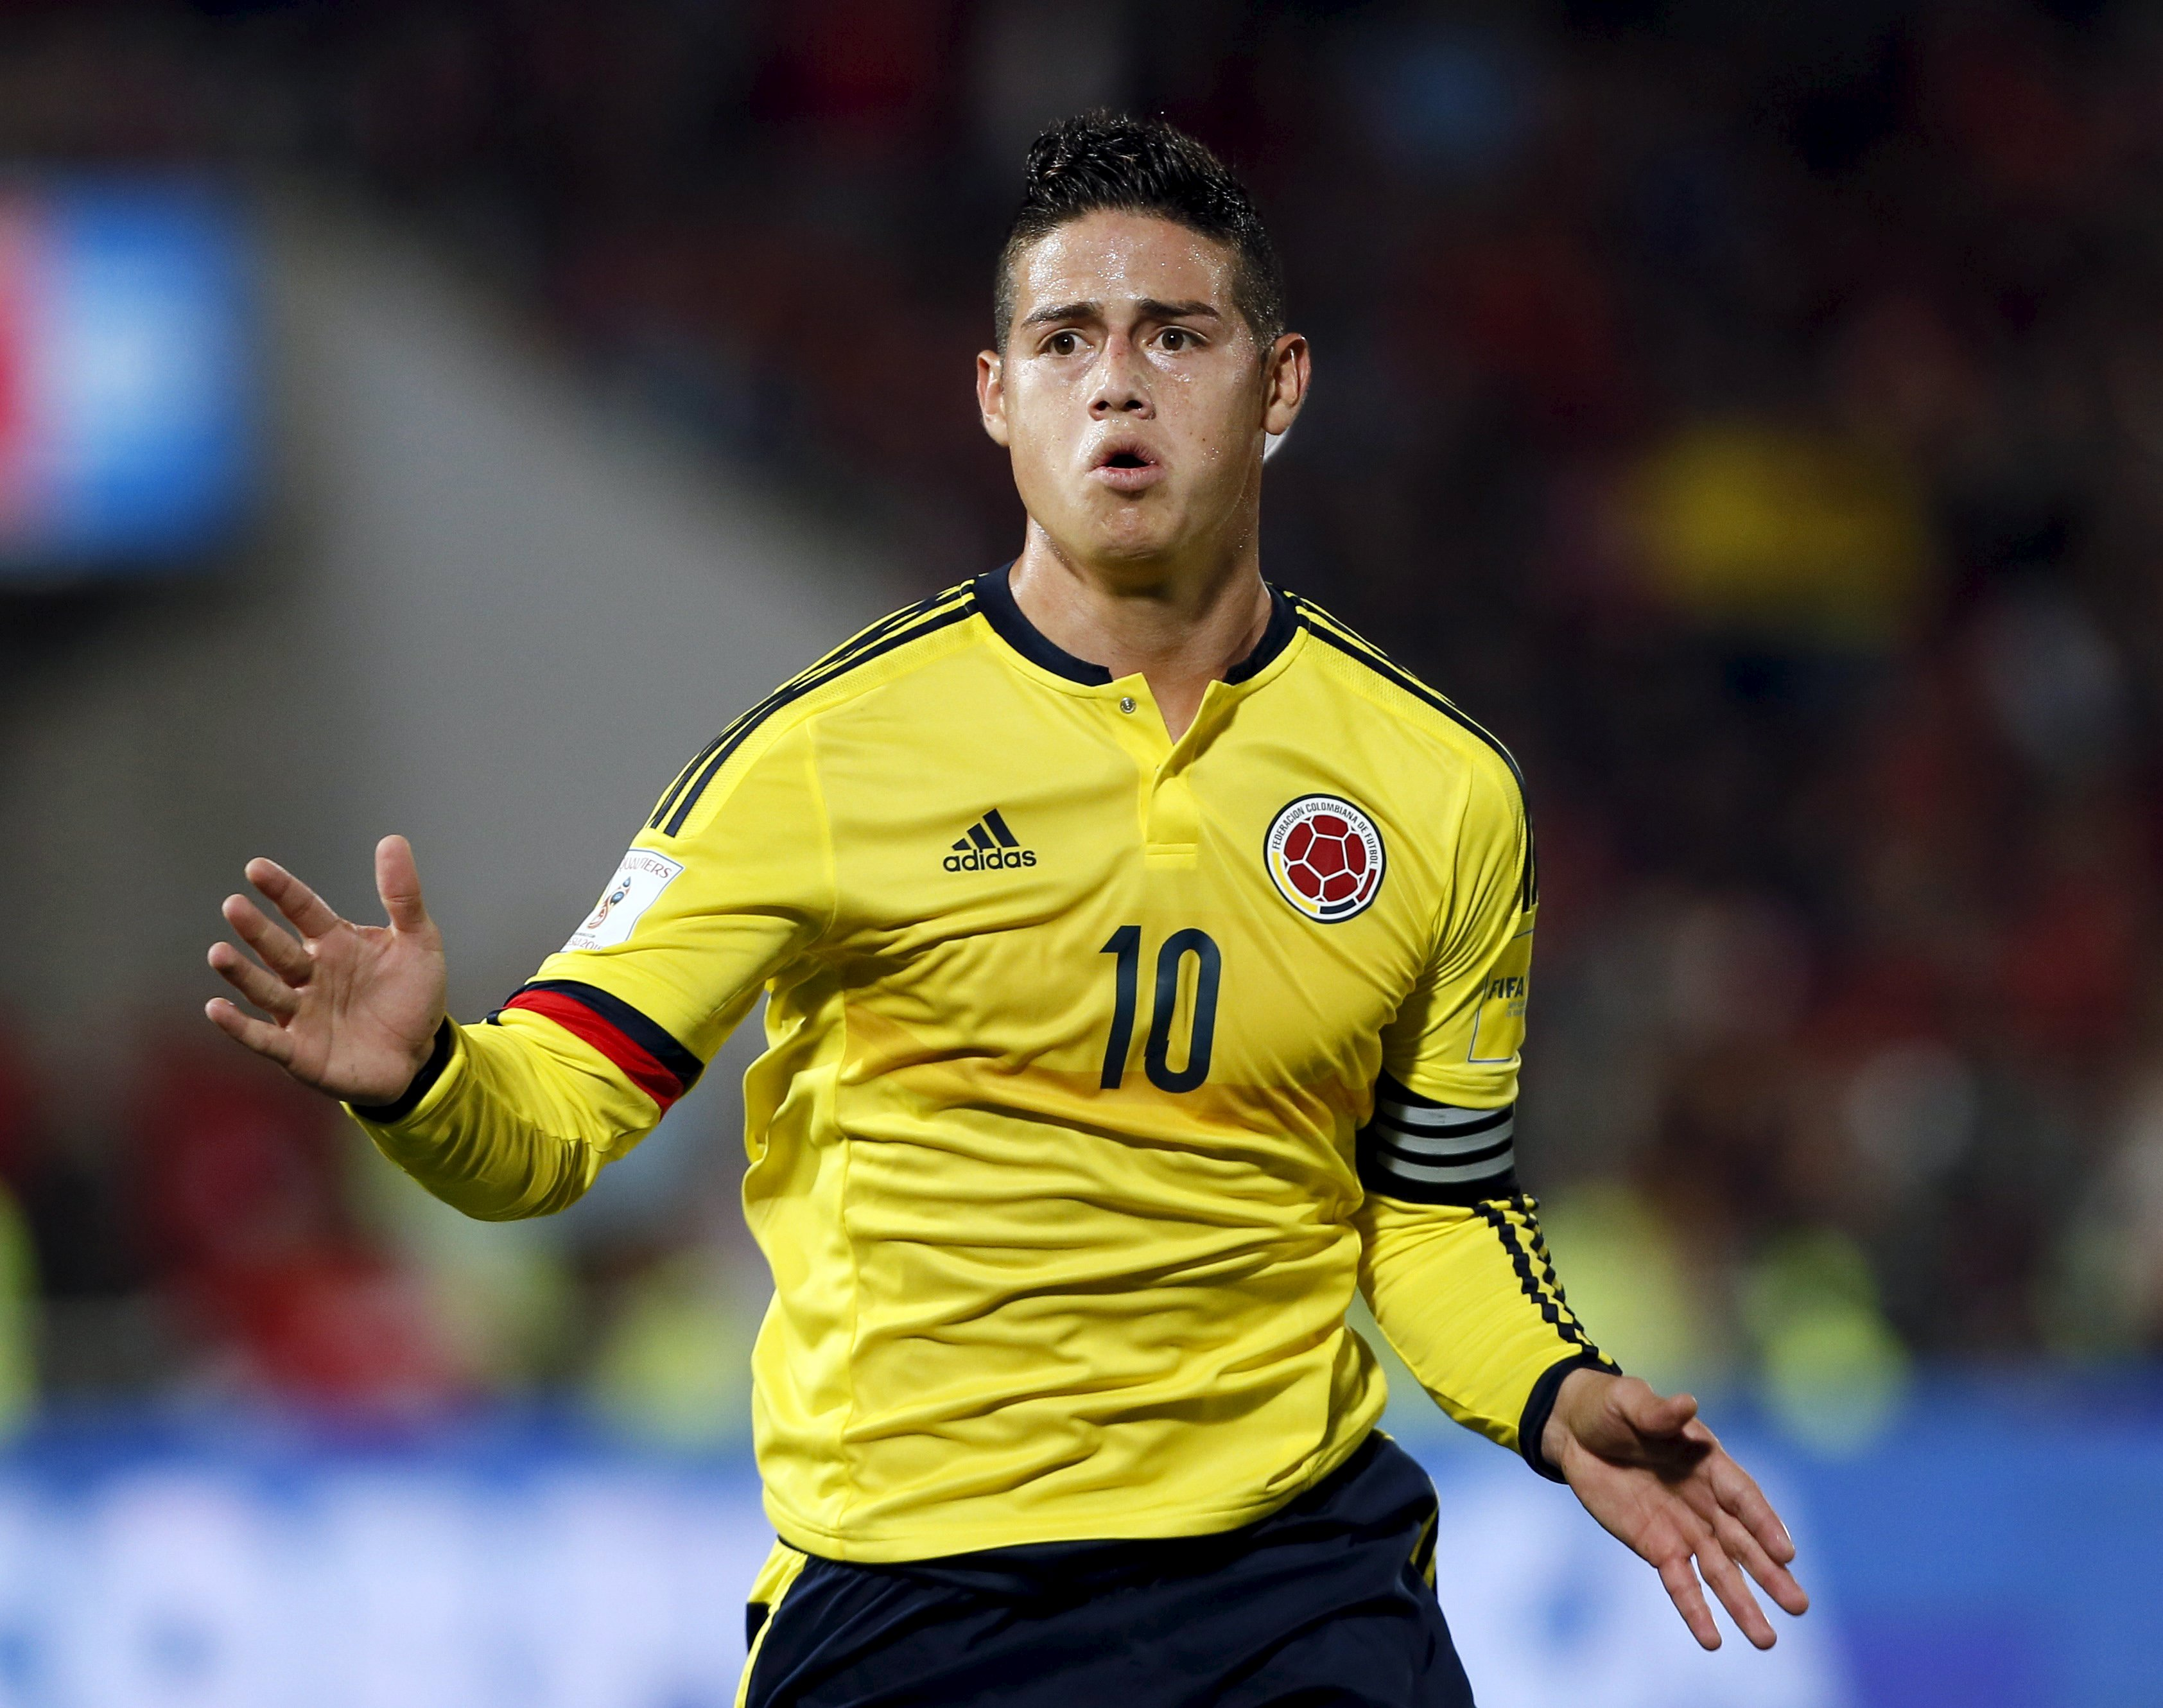 Colombia's James Rodriguez celebrates a goal against Chile during their 2018 World Cup qualifying soccer match at the national Julio Martinez stadium in Santiago, Chile, November 12, 2015. Photo: Reuters